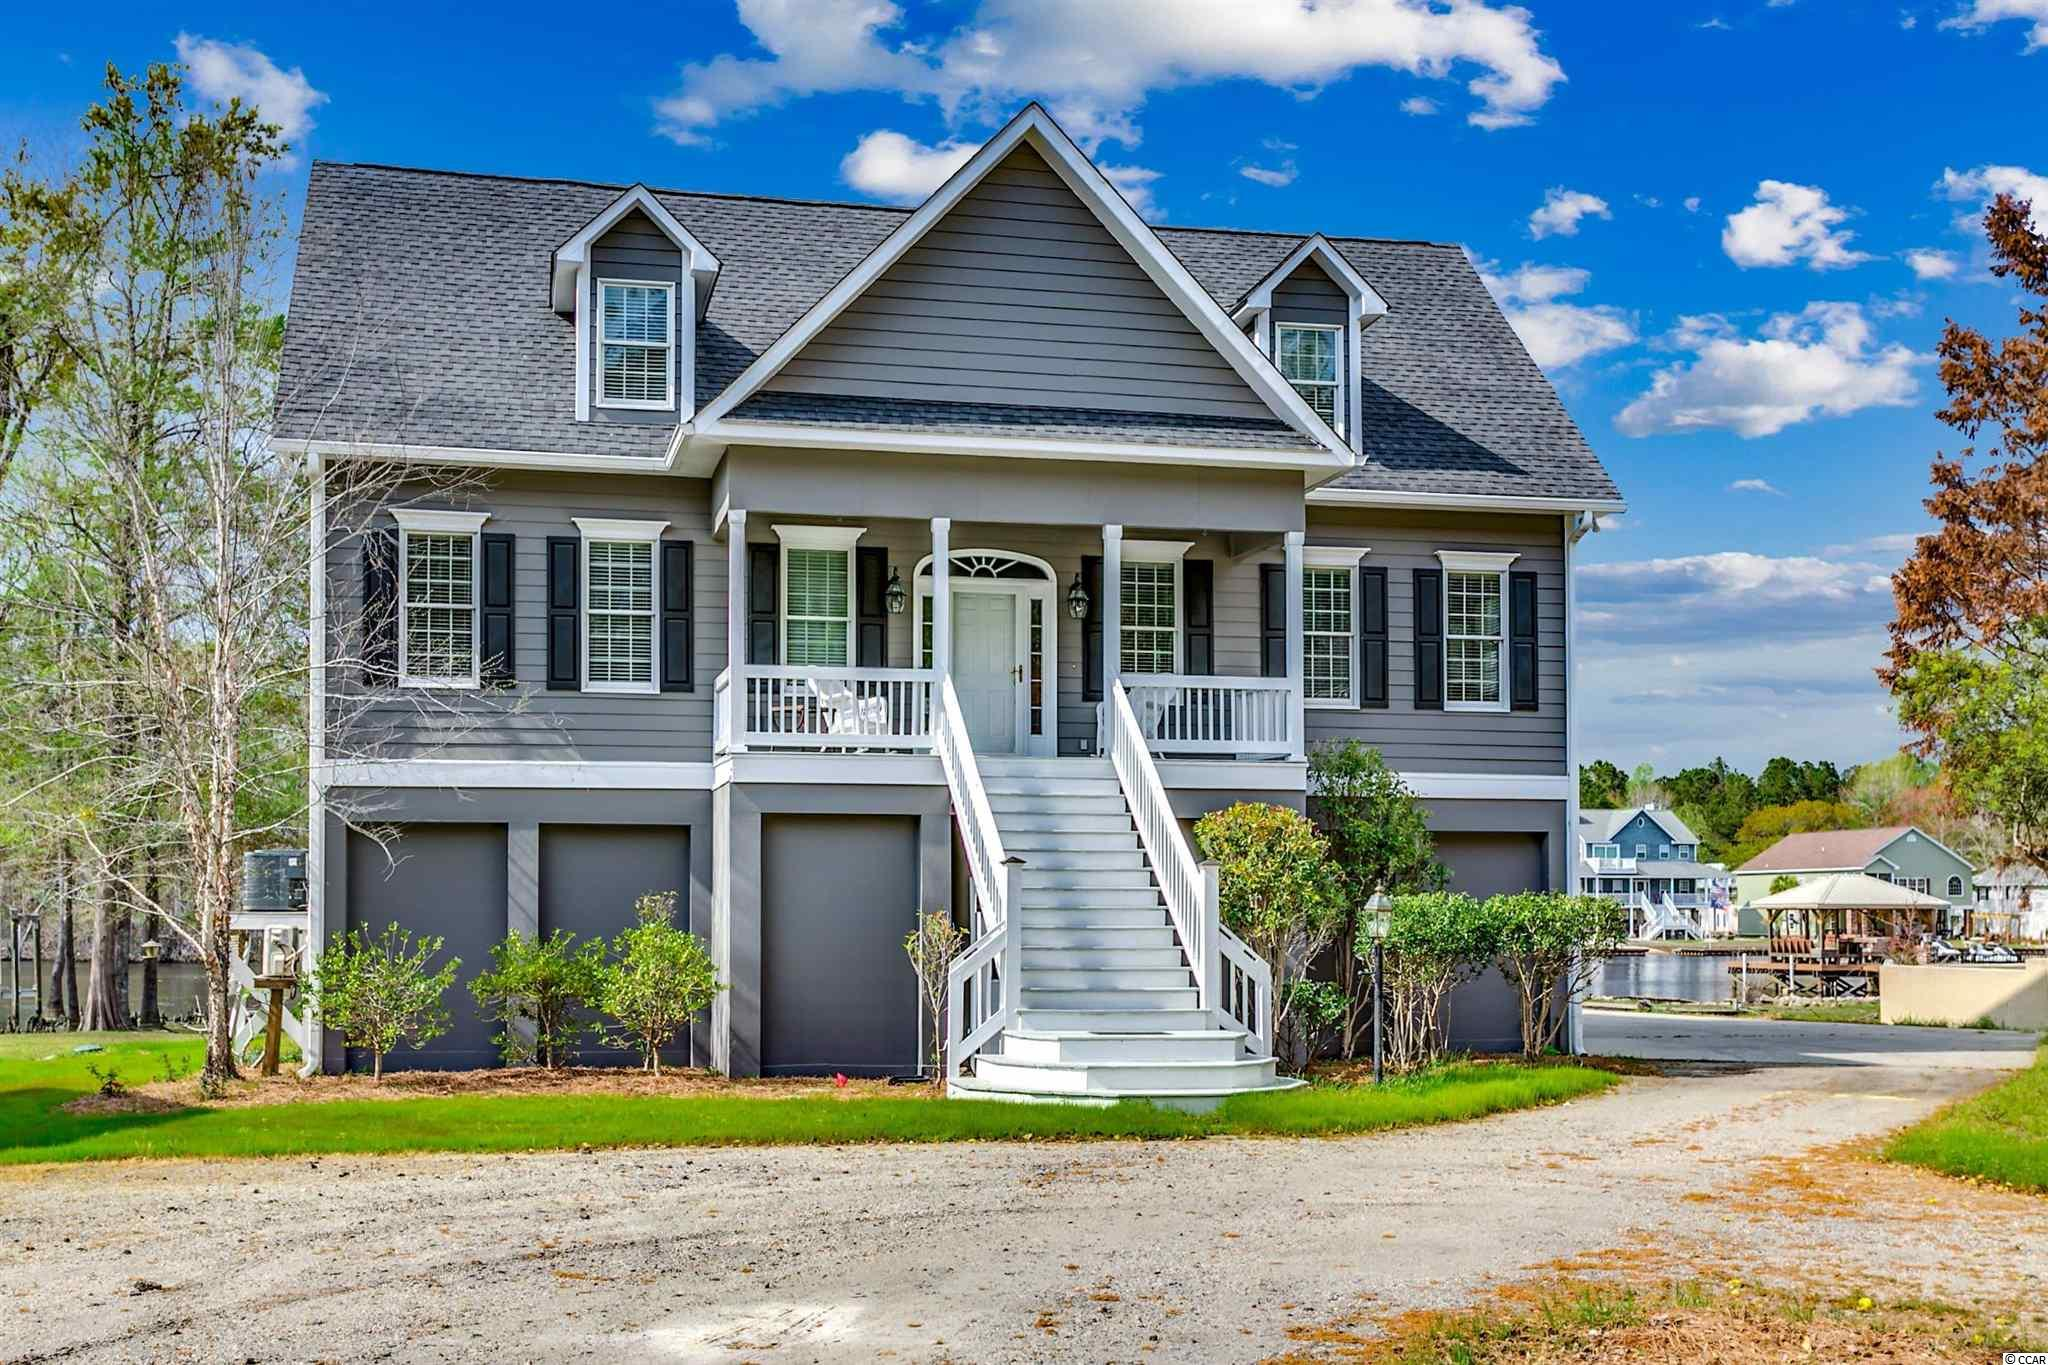 This adorable waterfront home located directly on the Intracoastal has a spacious 2,953 heated square feet, 4,931 total square feet layout with an unbelievable 12-foot Anderson Bi-parting sliding door opening up to your 50' long and 12' wide 600-square foot back deck overlooking the waterway. There are a pair of master suites and a total of four bedrooms, 3.5 bathrooms with a separate office. Wait until you see the first floor master bedroom. It is gorgeous. It has direct access to the deck, includes an en-suite bathroom with a tiled walk-in shower, his and her walk-in closets, jacuzzi tub double granite vanities, separate water closet and a linen closet. The kitchen is equally impressive and includes upgraded stainless steel appliances, granite countertops, pantry, built-in desk and custom cherry kitchen cabinetry. This beautifully decorated house is a must see and a must have home for anyone, which also includes a first floor formal dining room with tray ceilings, high-end Hinkley lighting, a pre-wired and plumbed wetbar for future use, customized Anderson windows and doors throughout and is wired for surround sound and distributive audio. Finishing off the 1st level living space is a gas fireplace in the living room, enlarged laundry room adjacent to the kitchen with an utility sink, a separate 400-foot square foot bonus room that is heated and cooled, plus two hot water heaters, or possible elevator space and ample storage in the attic, garage and closets. This home provides the customized touch with custom wide oak plank flooring in the common areas, customized two-piece molding on all windows, a customized staircase and doors as well as customized two-piece baseboard molding. This home is convenient to great schools and shopping. This impeccably landscaped home also includes a whole yard sprinkler system. There is a bounty of parking for your cars, up to six(6), and a (4) four-bay garage with an enclosed workroom/game room with about 400 square feet that is he